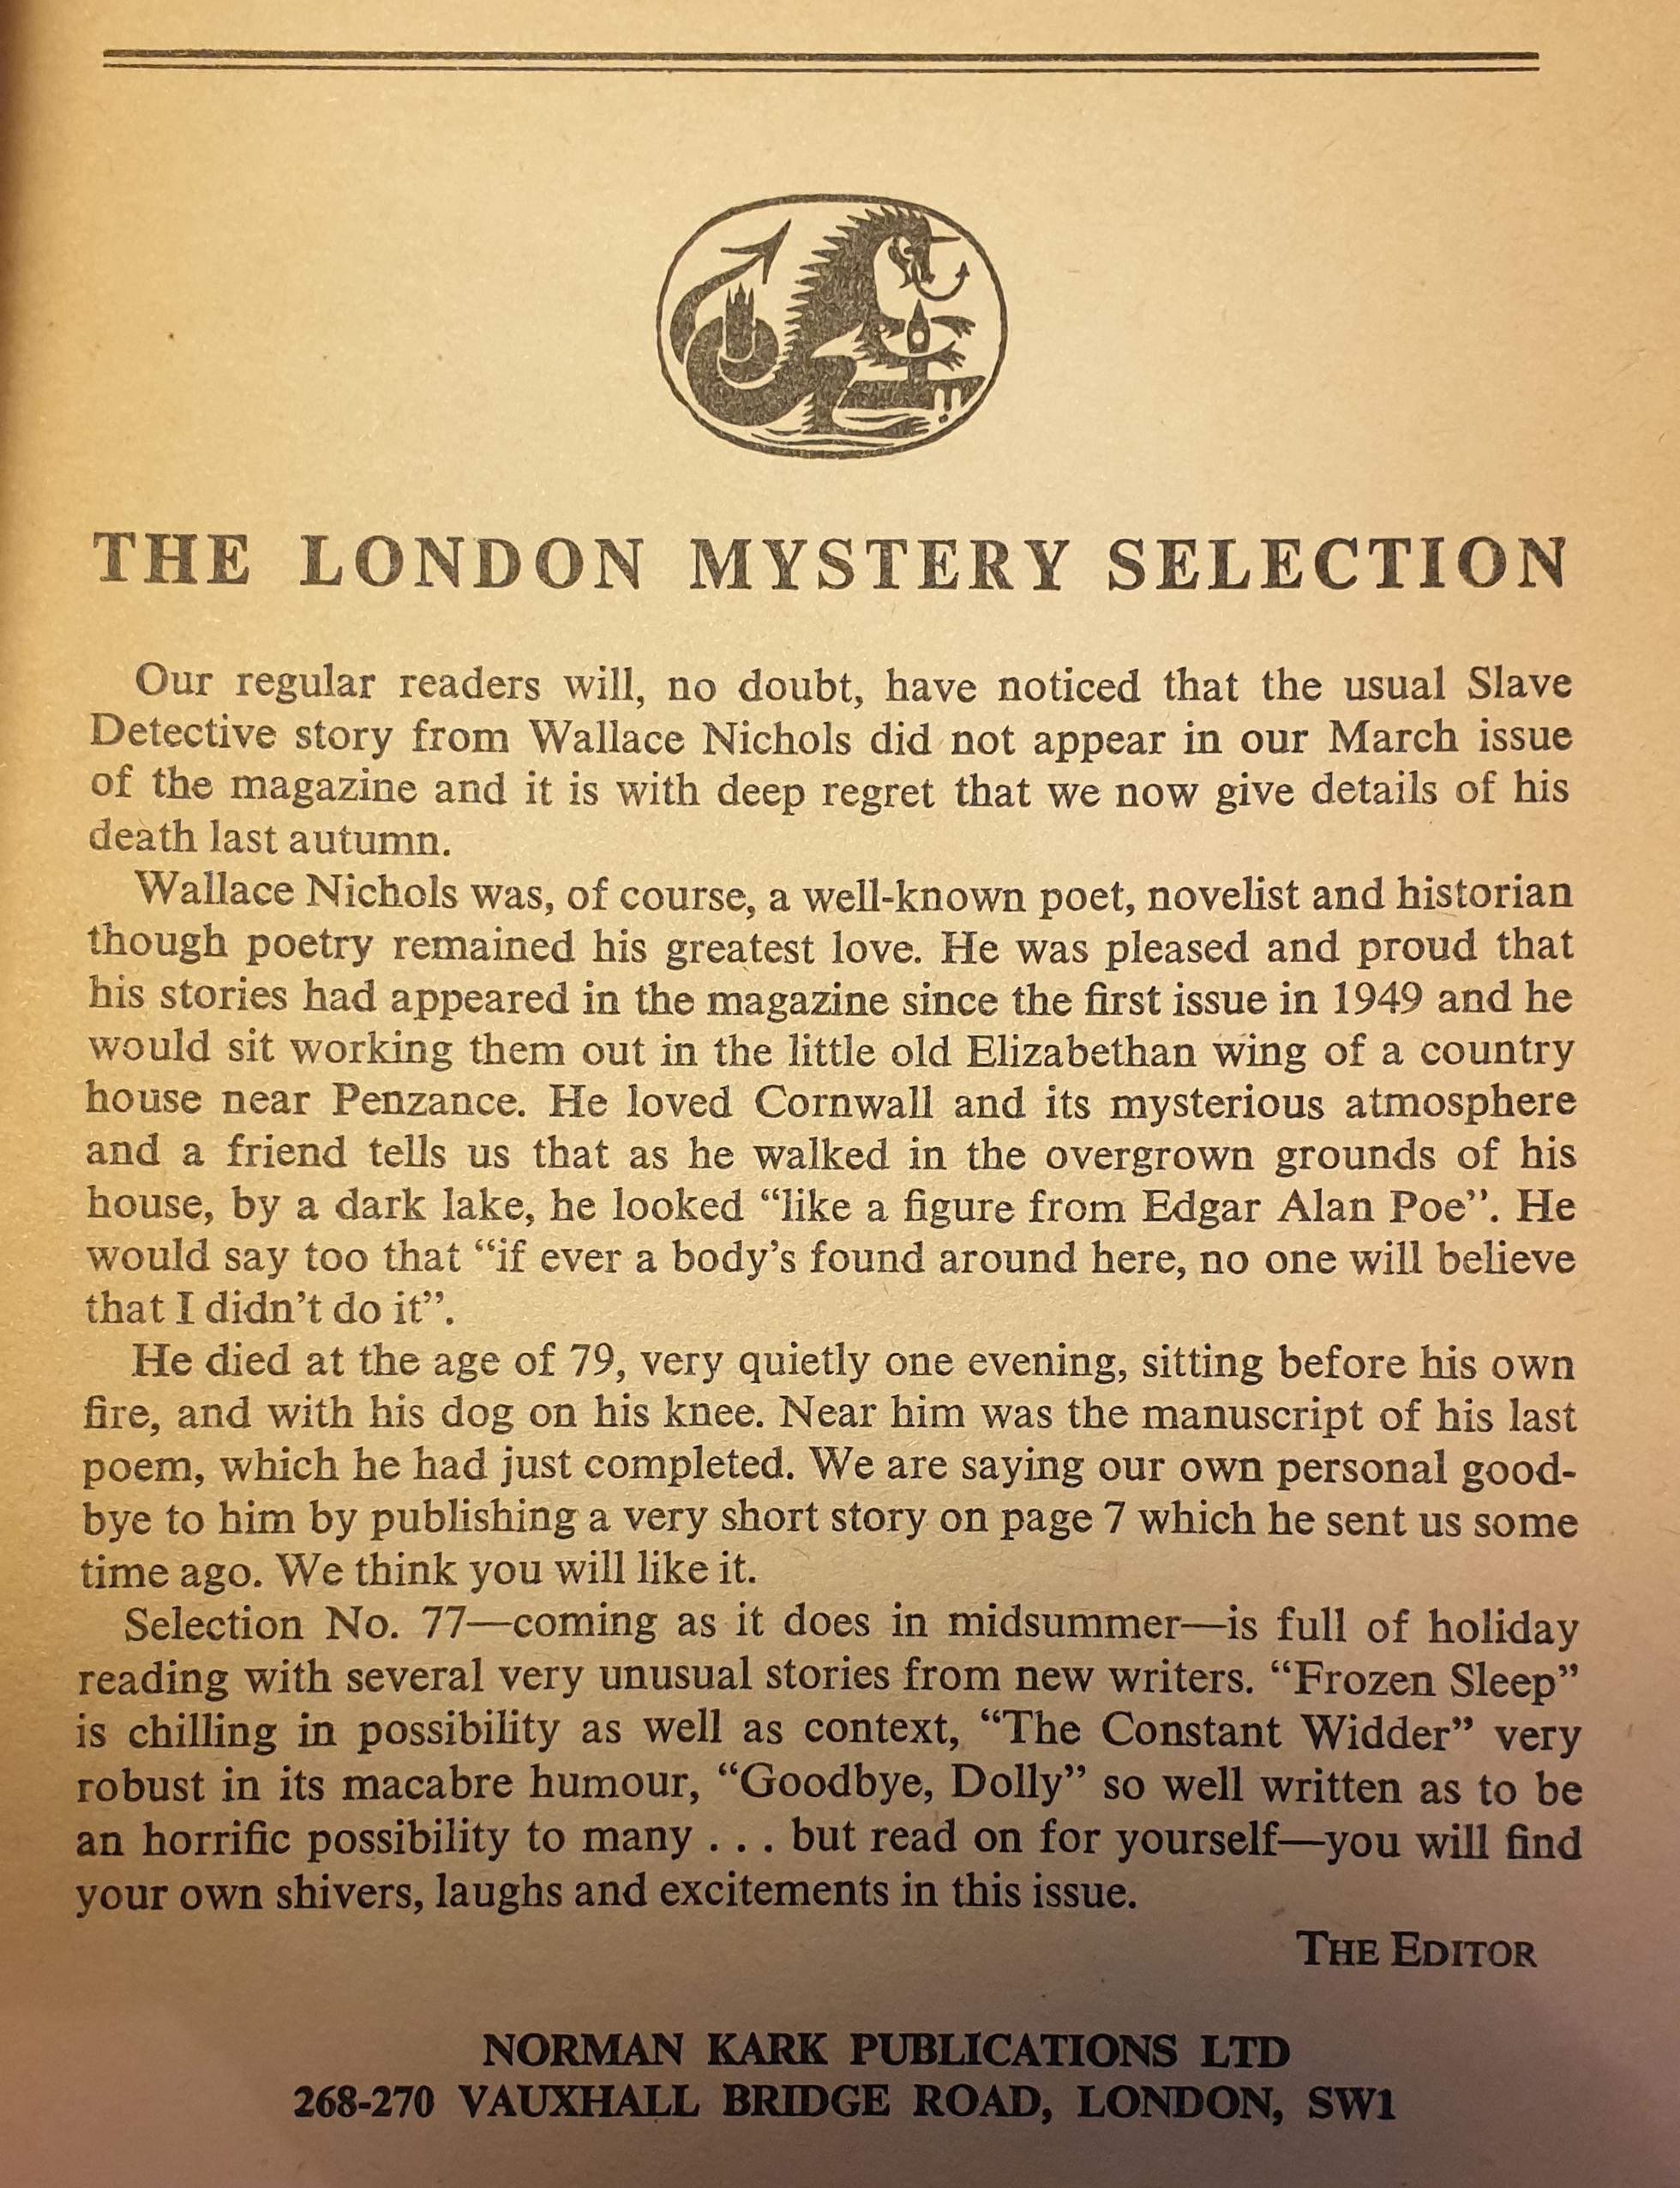 London Mystery Magazines Obituary of Wallace Nichols